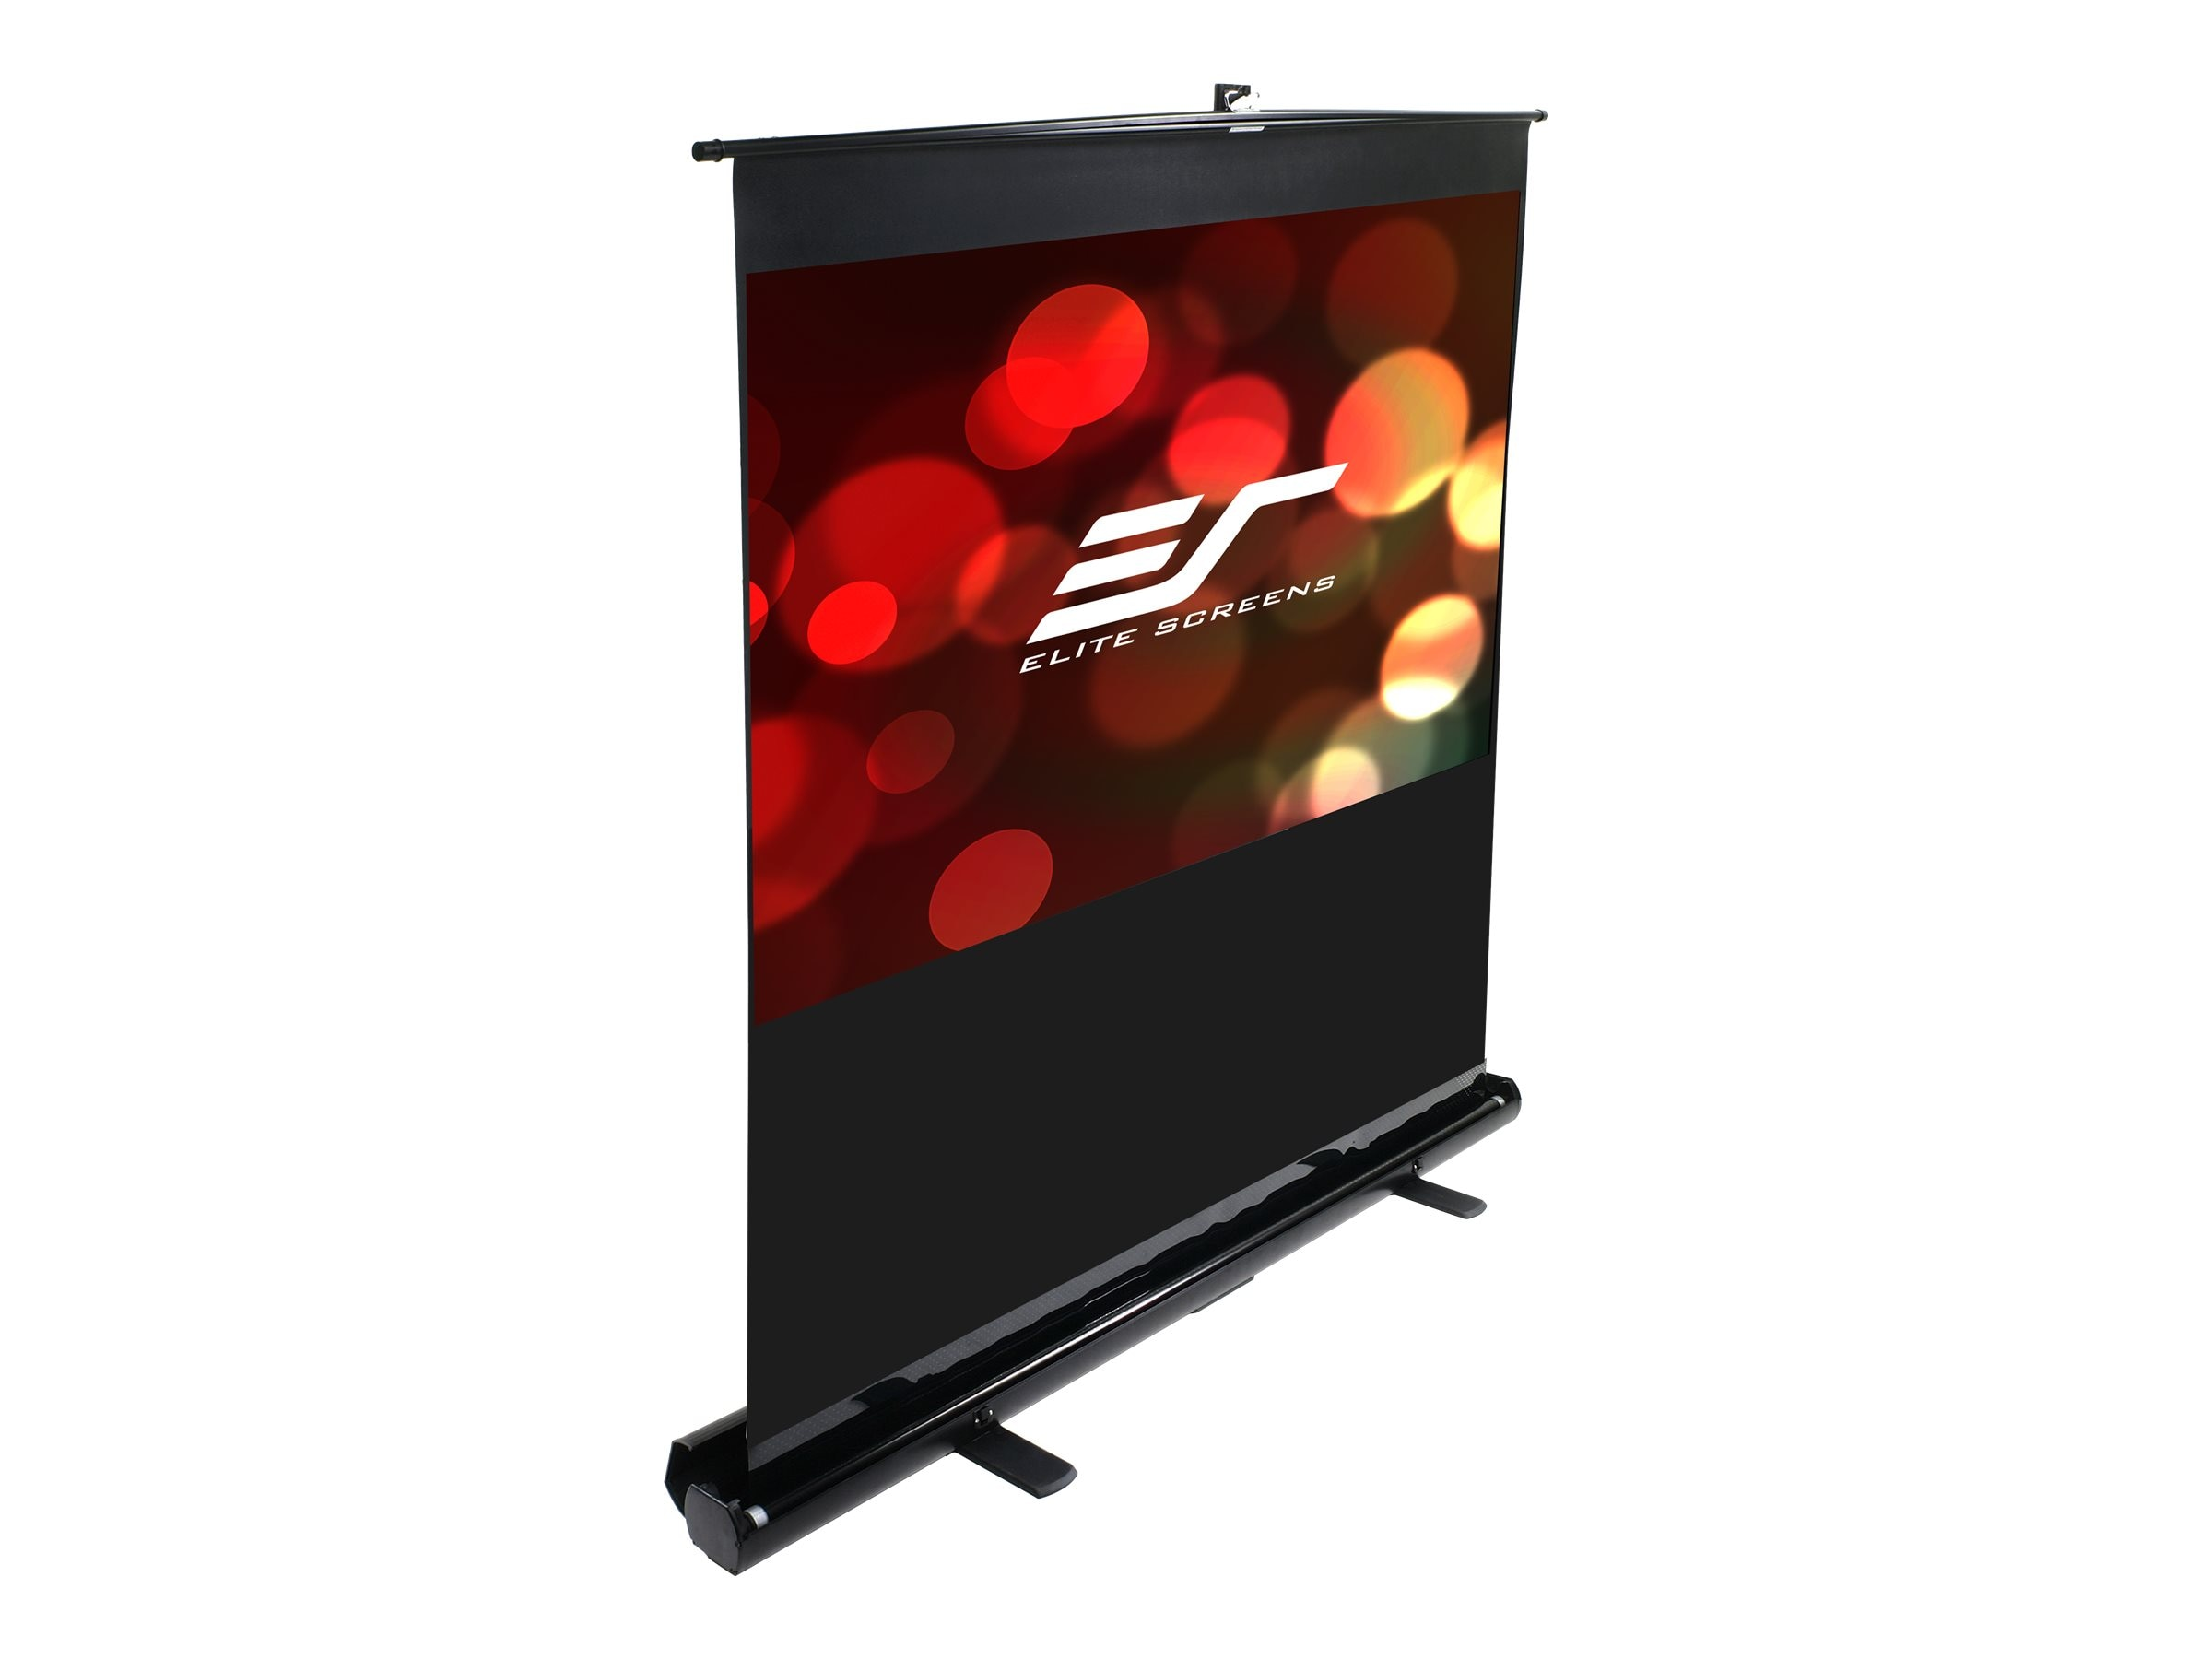 Elite ez-Cinema Series Projection Screen, Matte White, 4:3, 72in, 43x58in, F72NWV